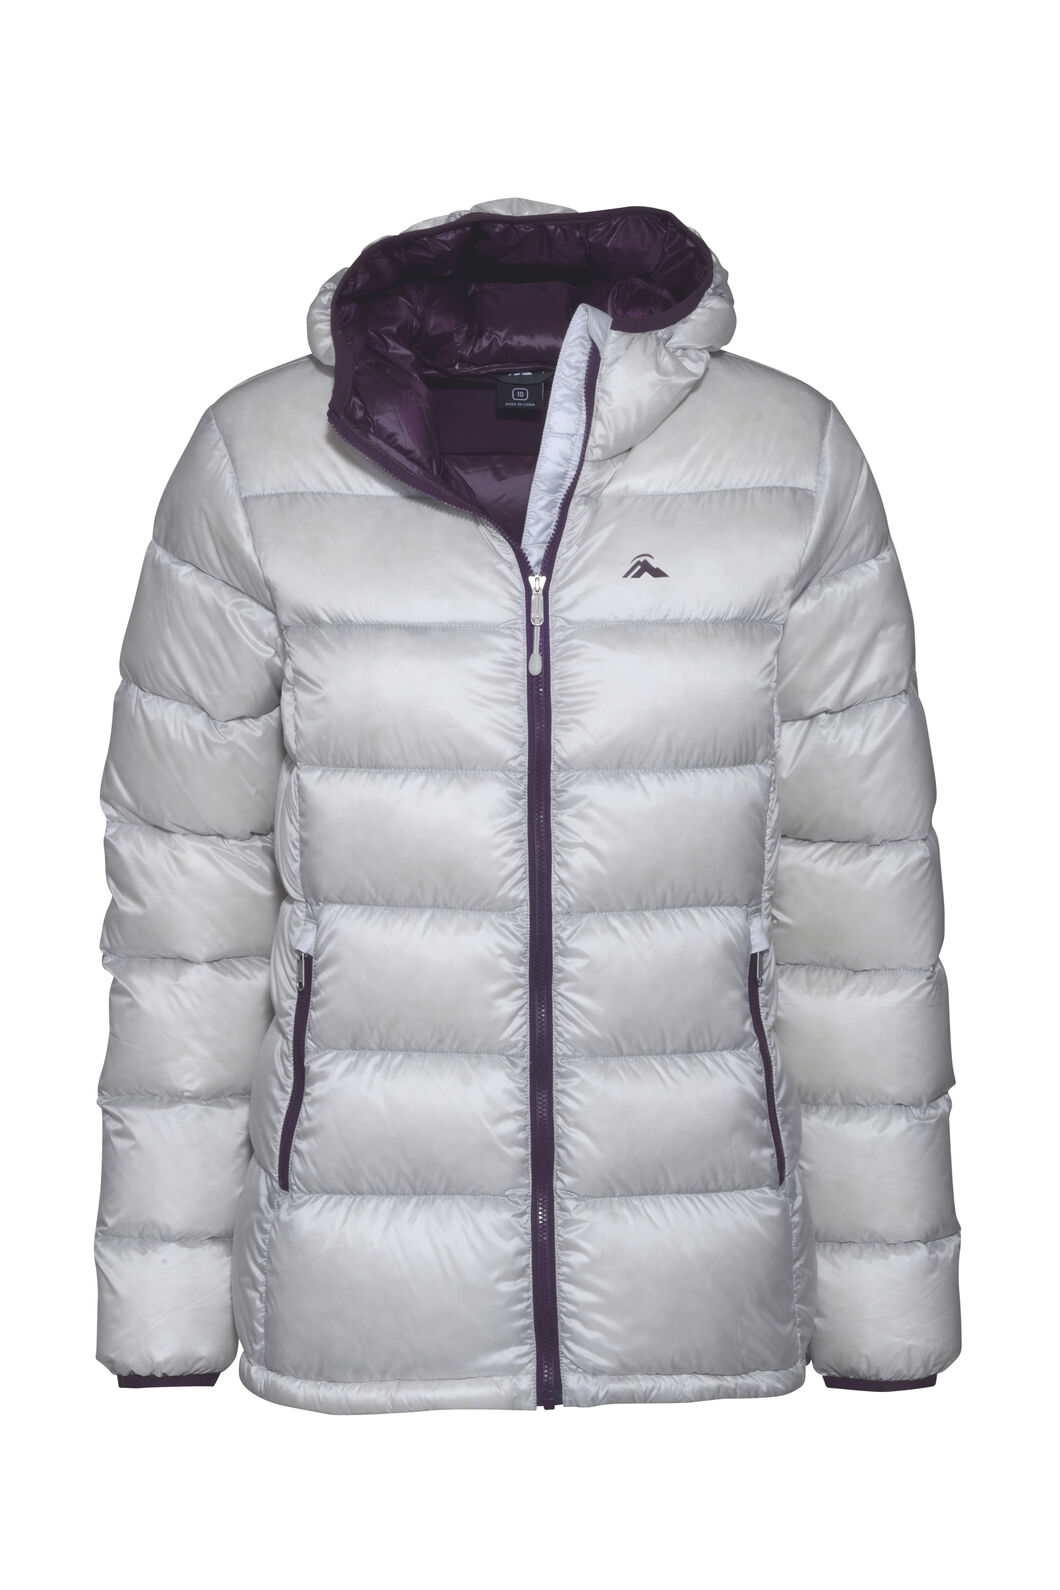 Macpac Jupiter Hooded Down Jacket — Women's, Nimbus Cloud, hi-res